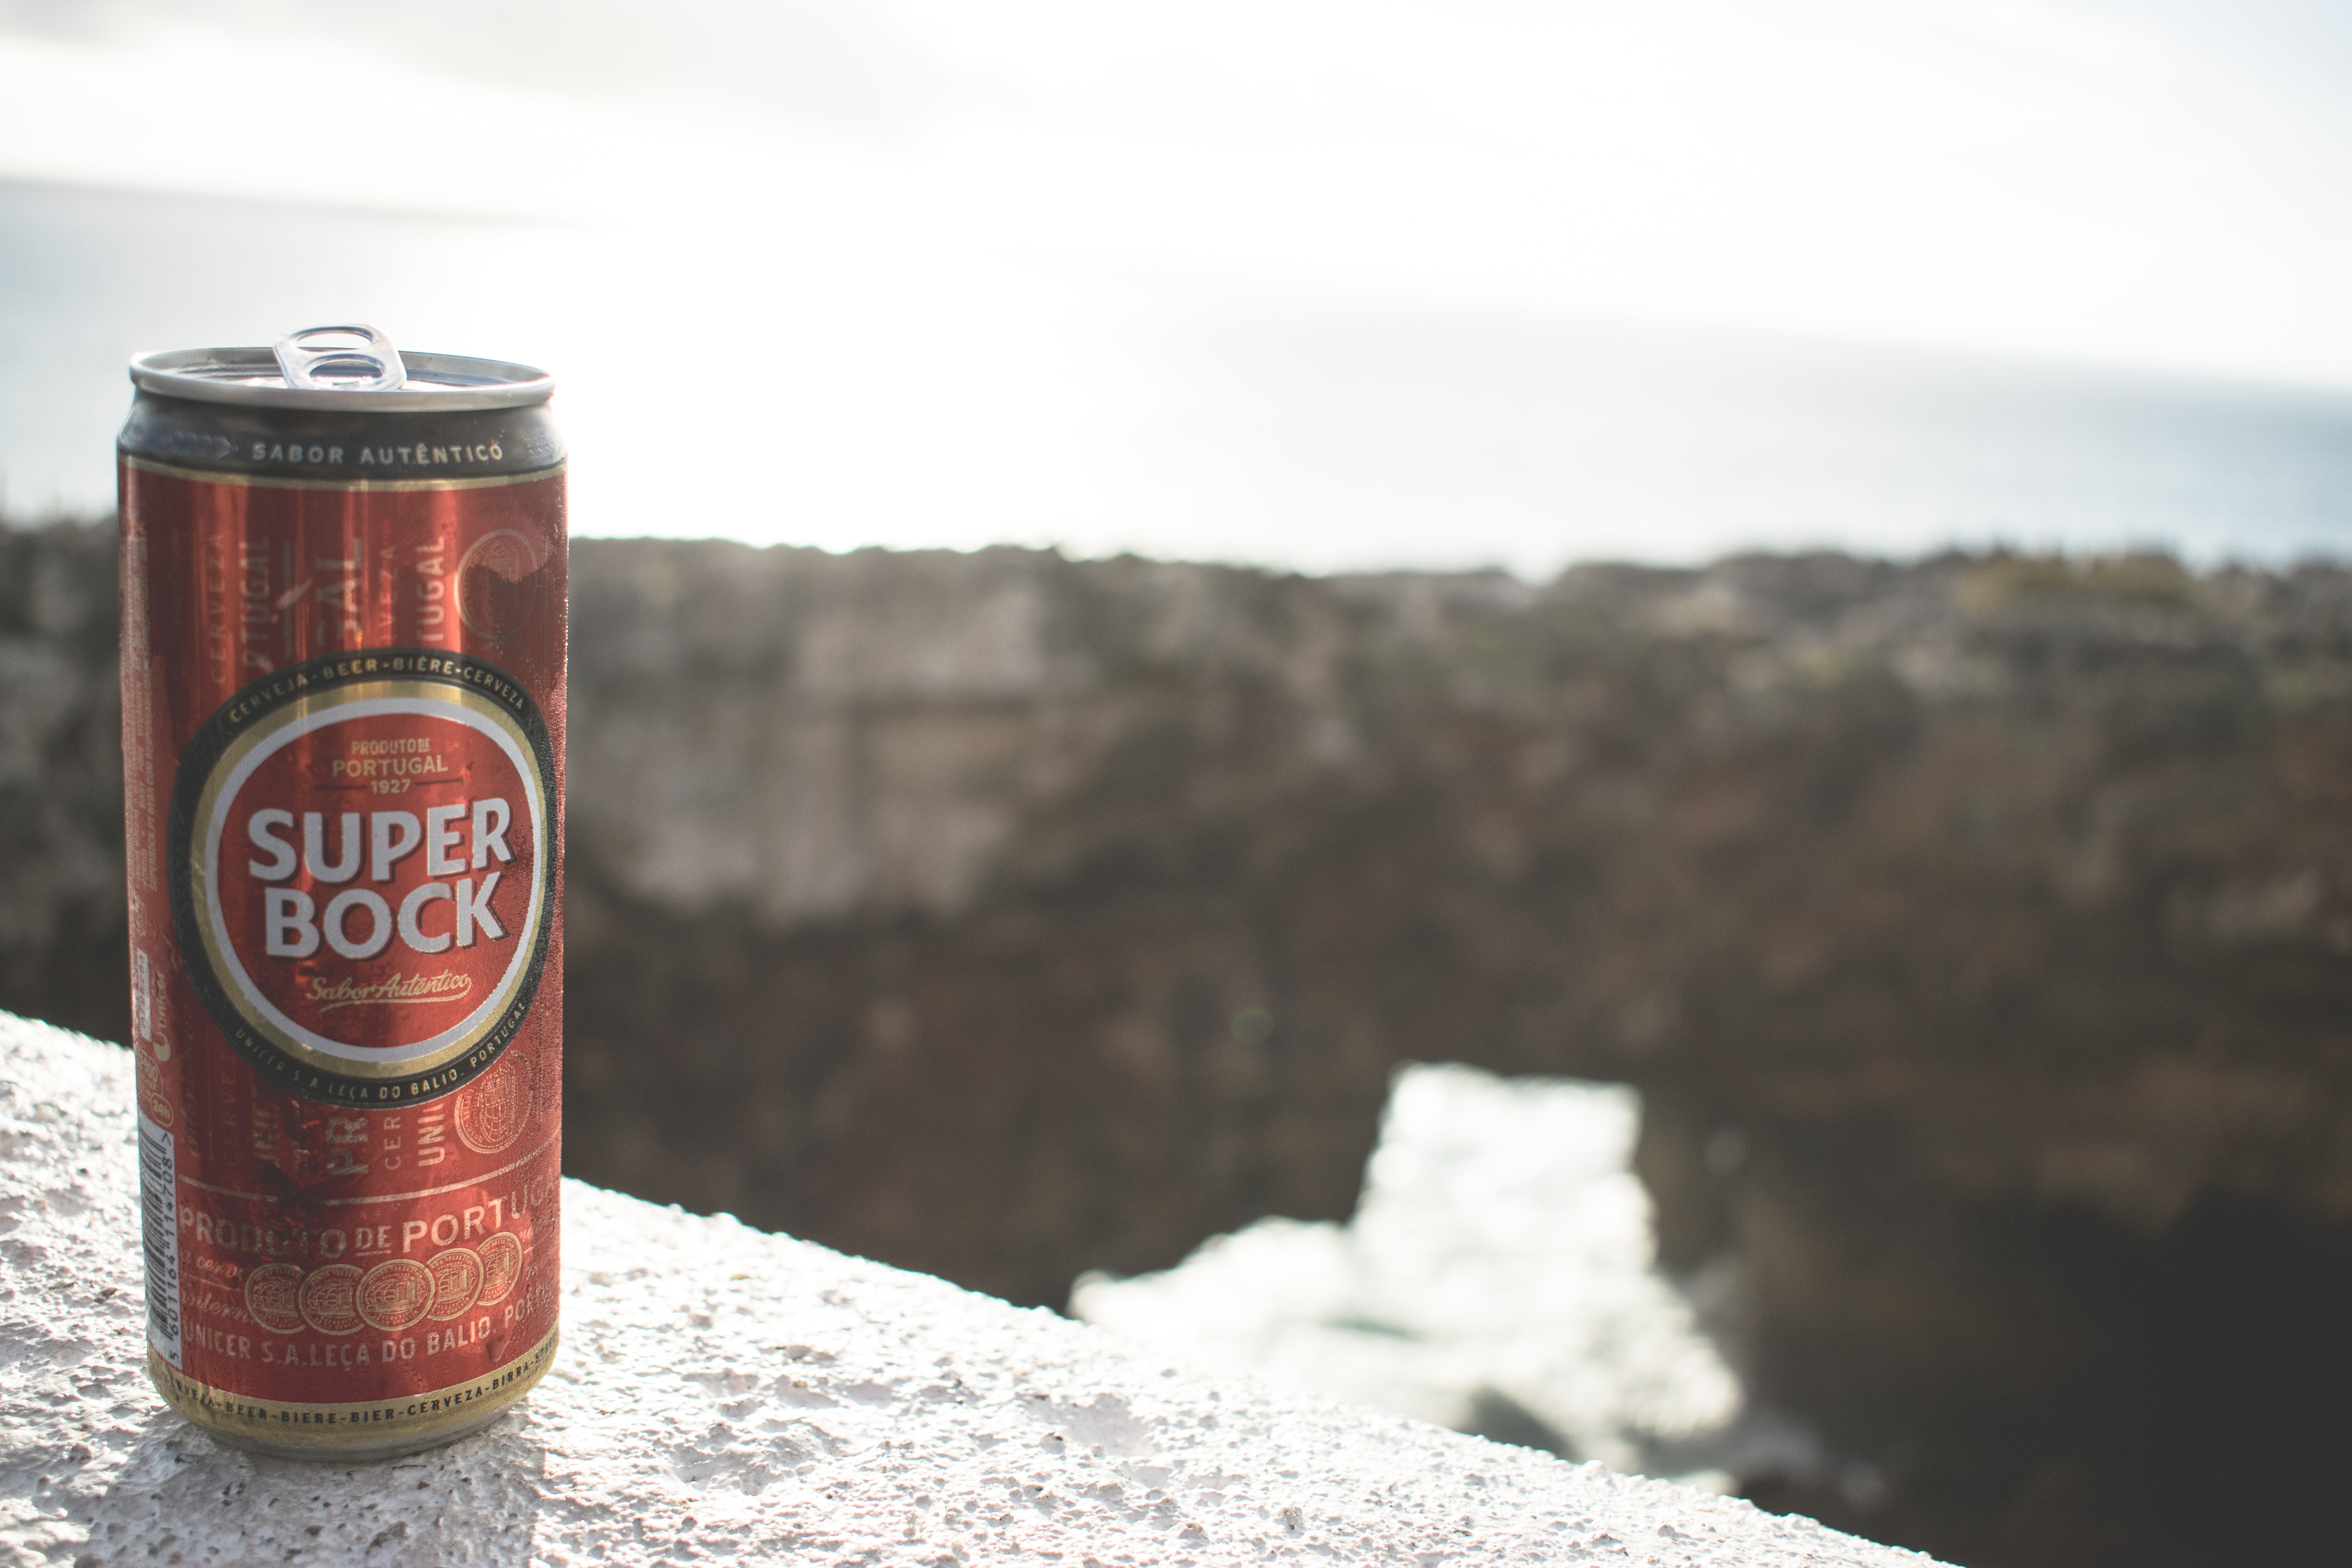 Tilt Lens Photography of Super Bock Tin Can, Sky, Scenic, Rock, Summer, HQ Photo